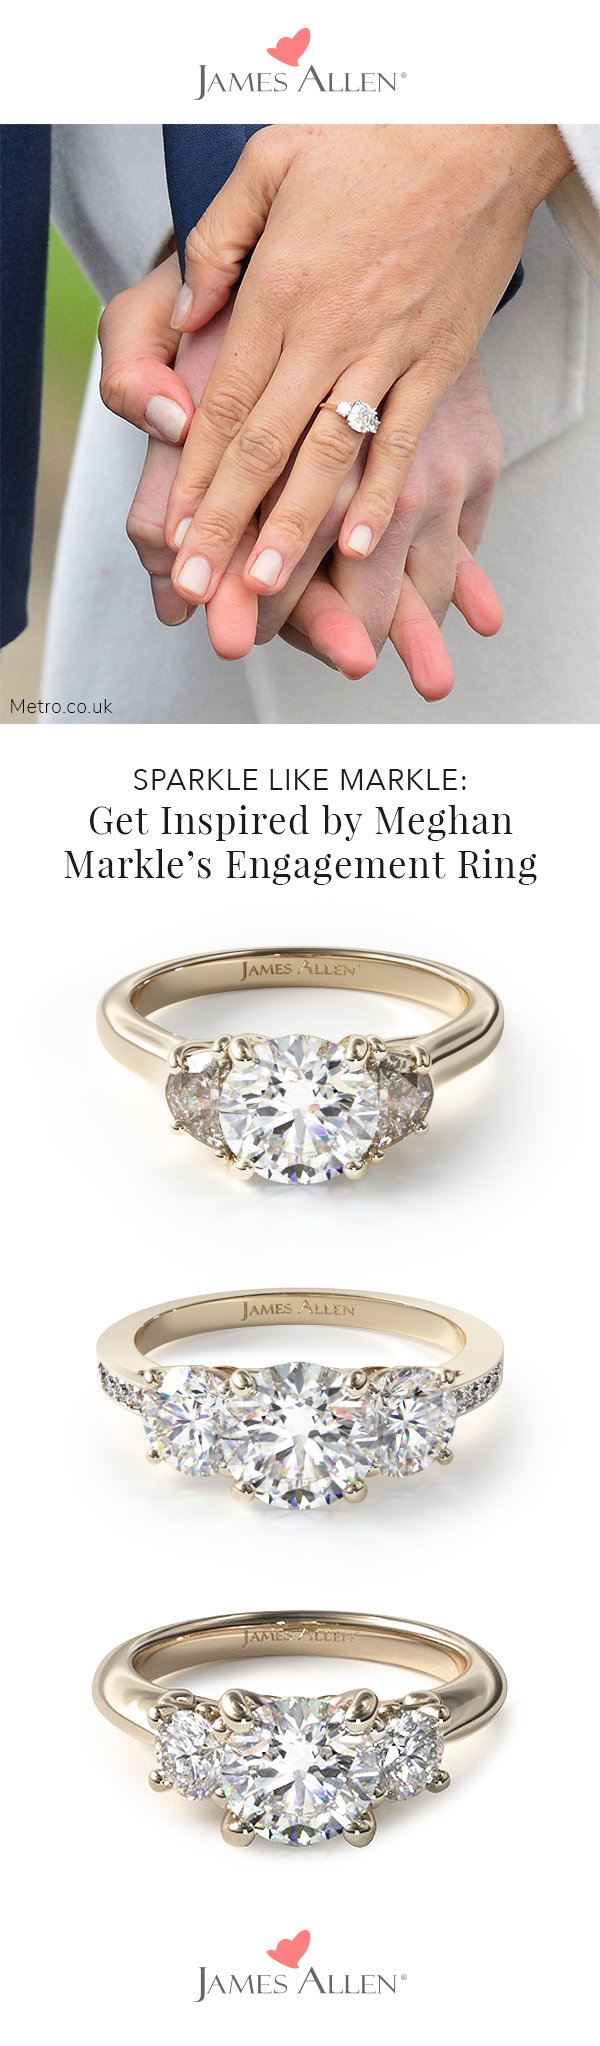 meghan markle's engagement ring pinterest pin